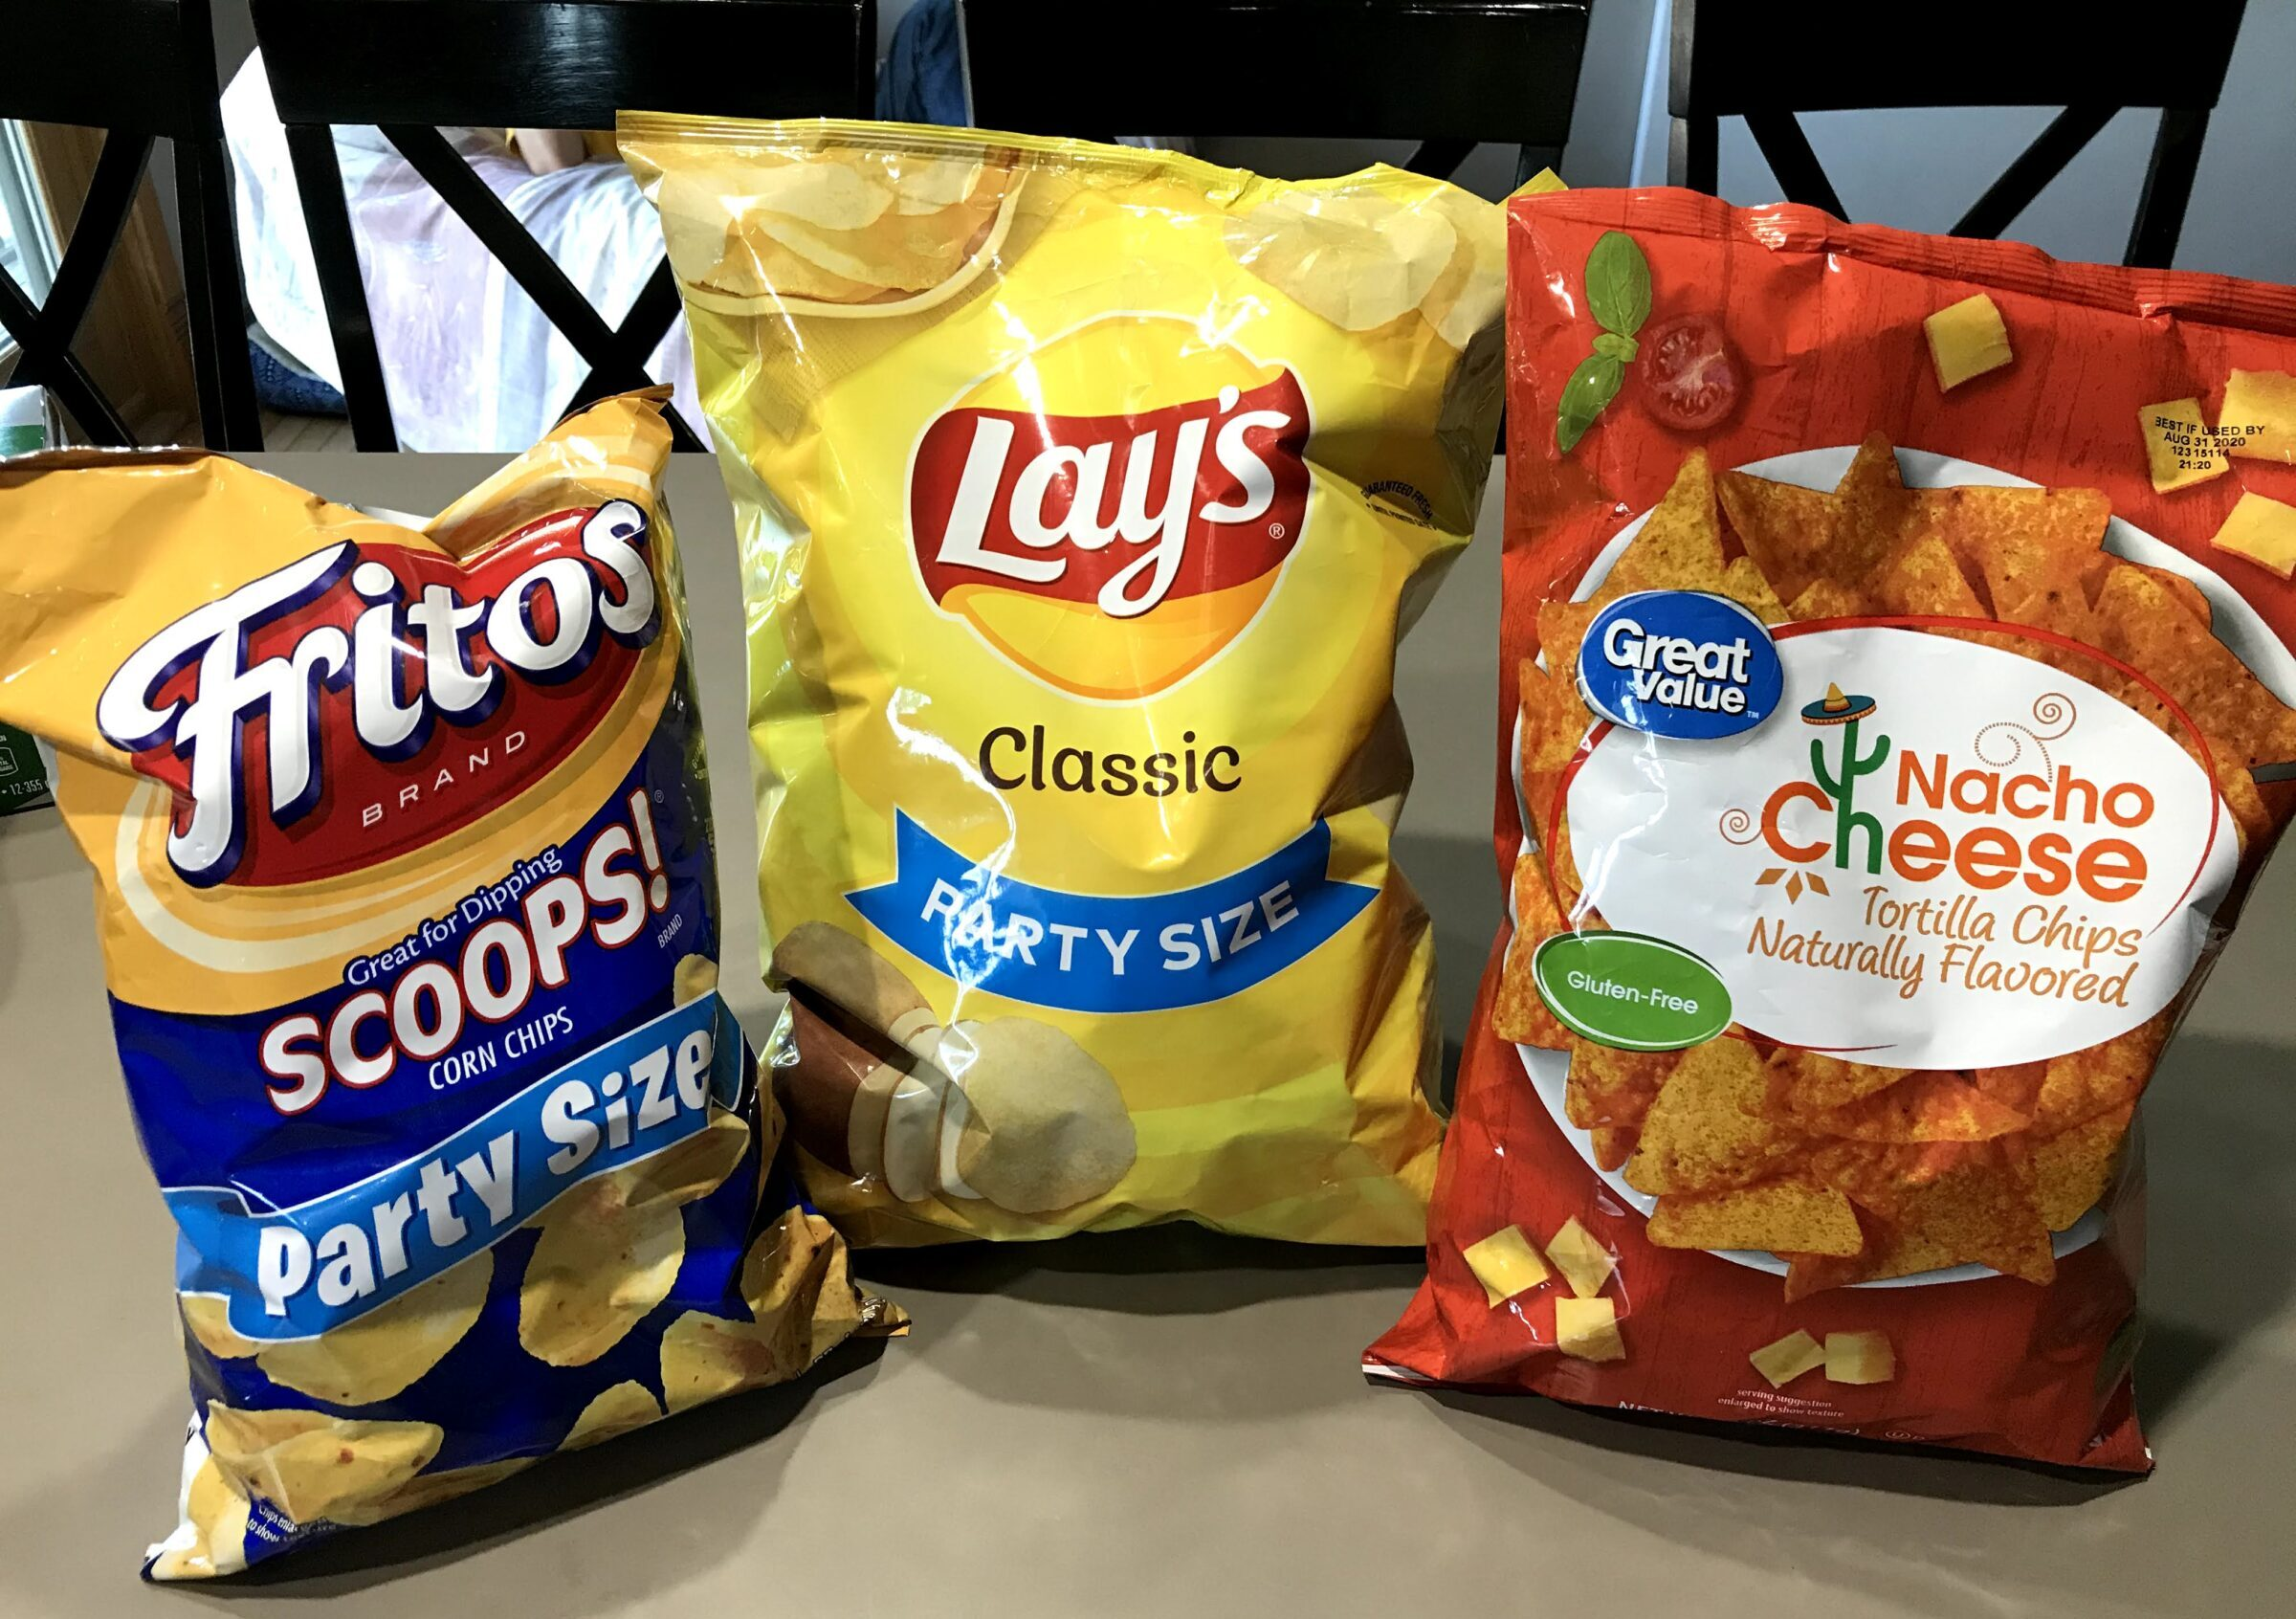 Gluten free chips including Fritos, Lays, and Great Value brands